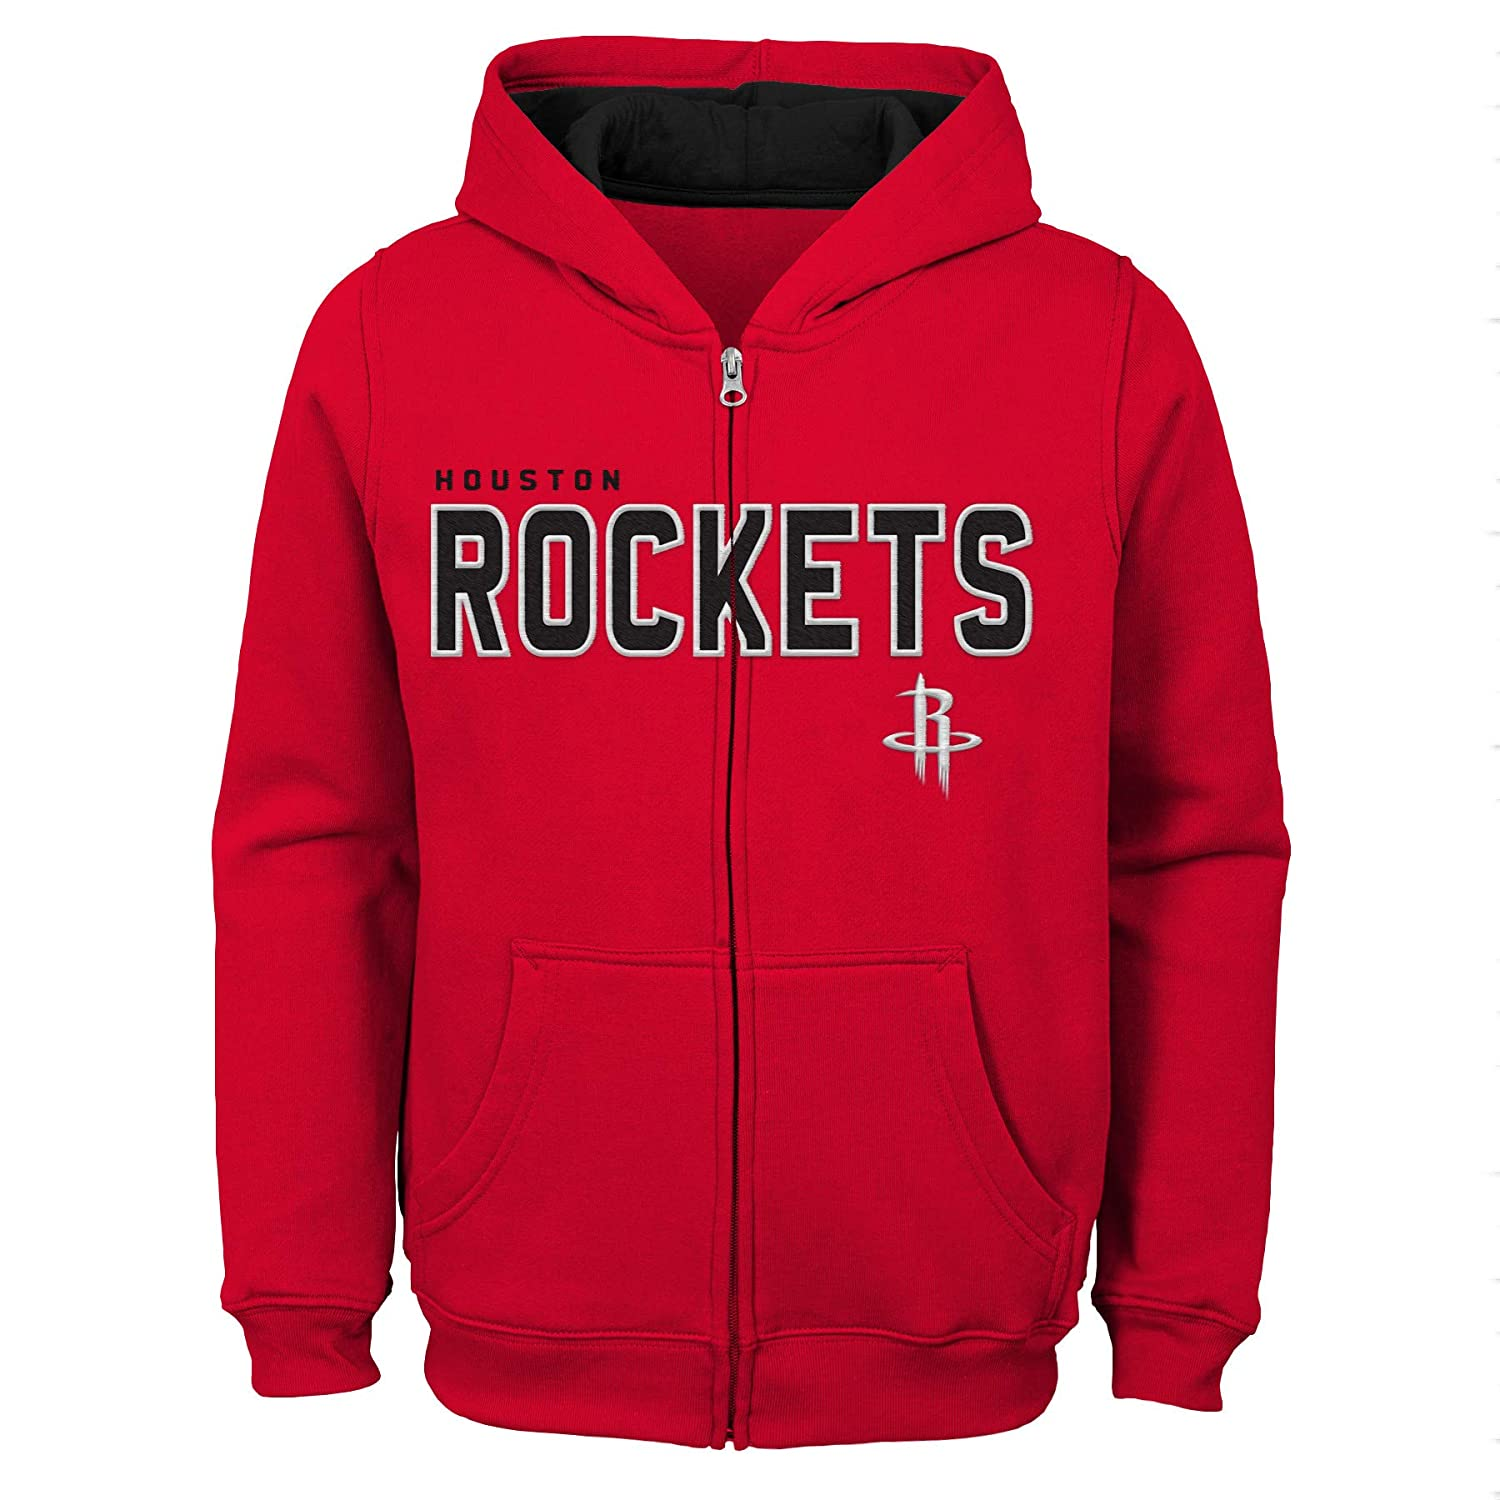 Red 4 NBA by Outerstuff NBA Kids /& Youth Boys Houston Rockets Stated Full Zip Fleece Hoodie Kids Small